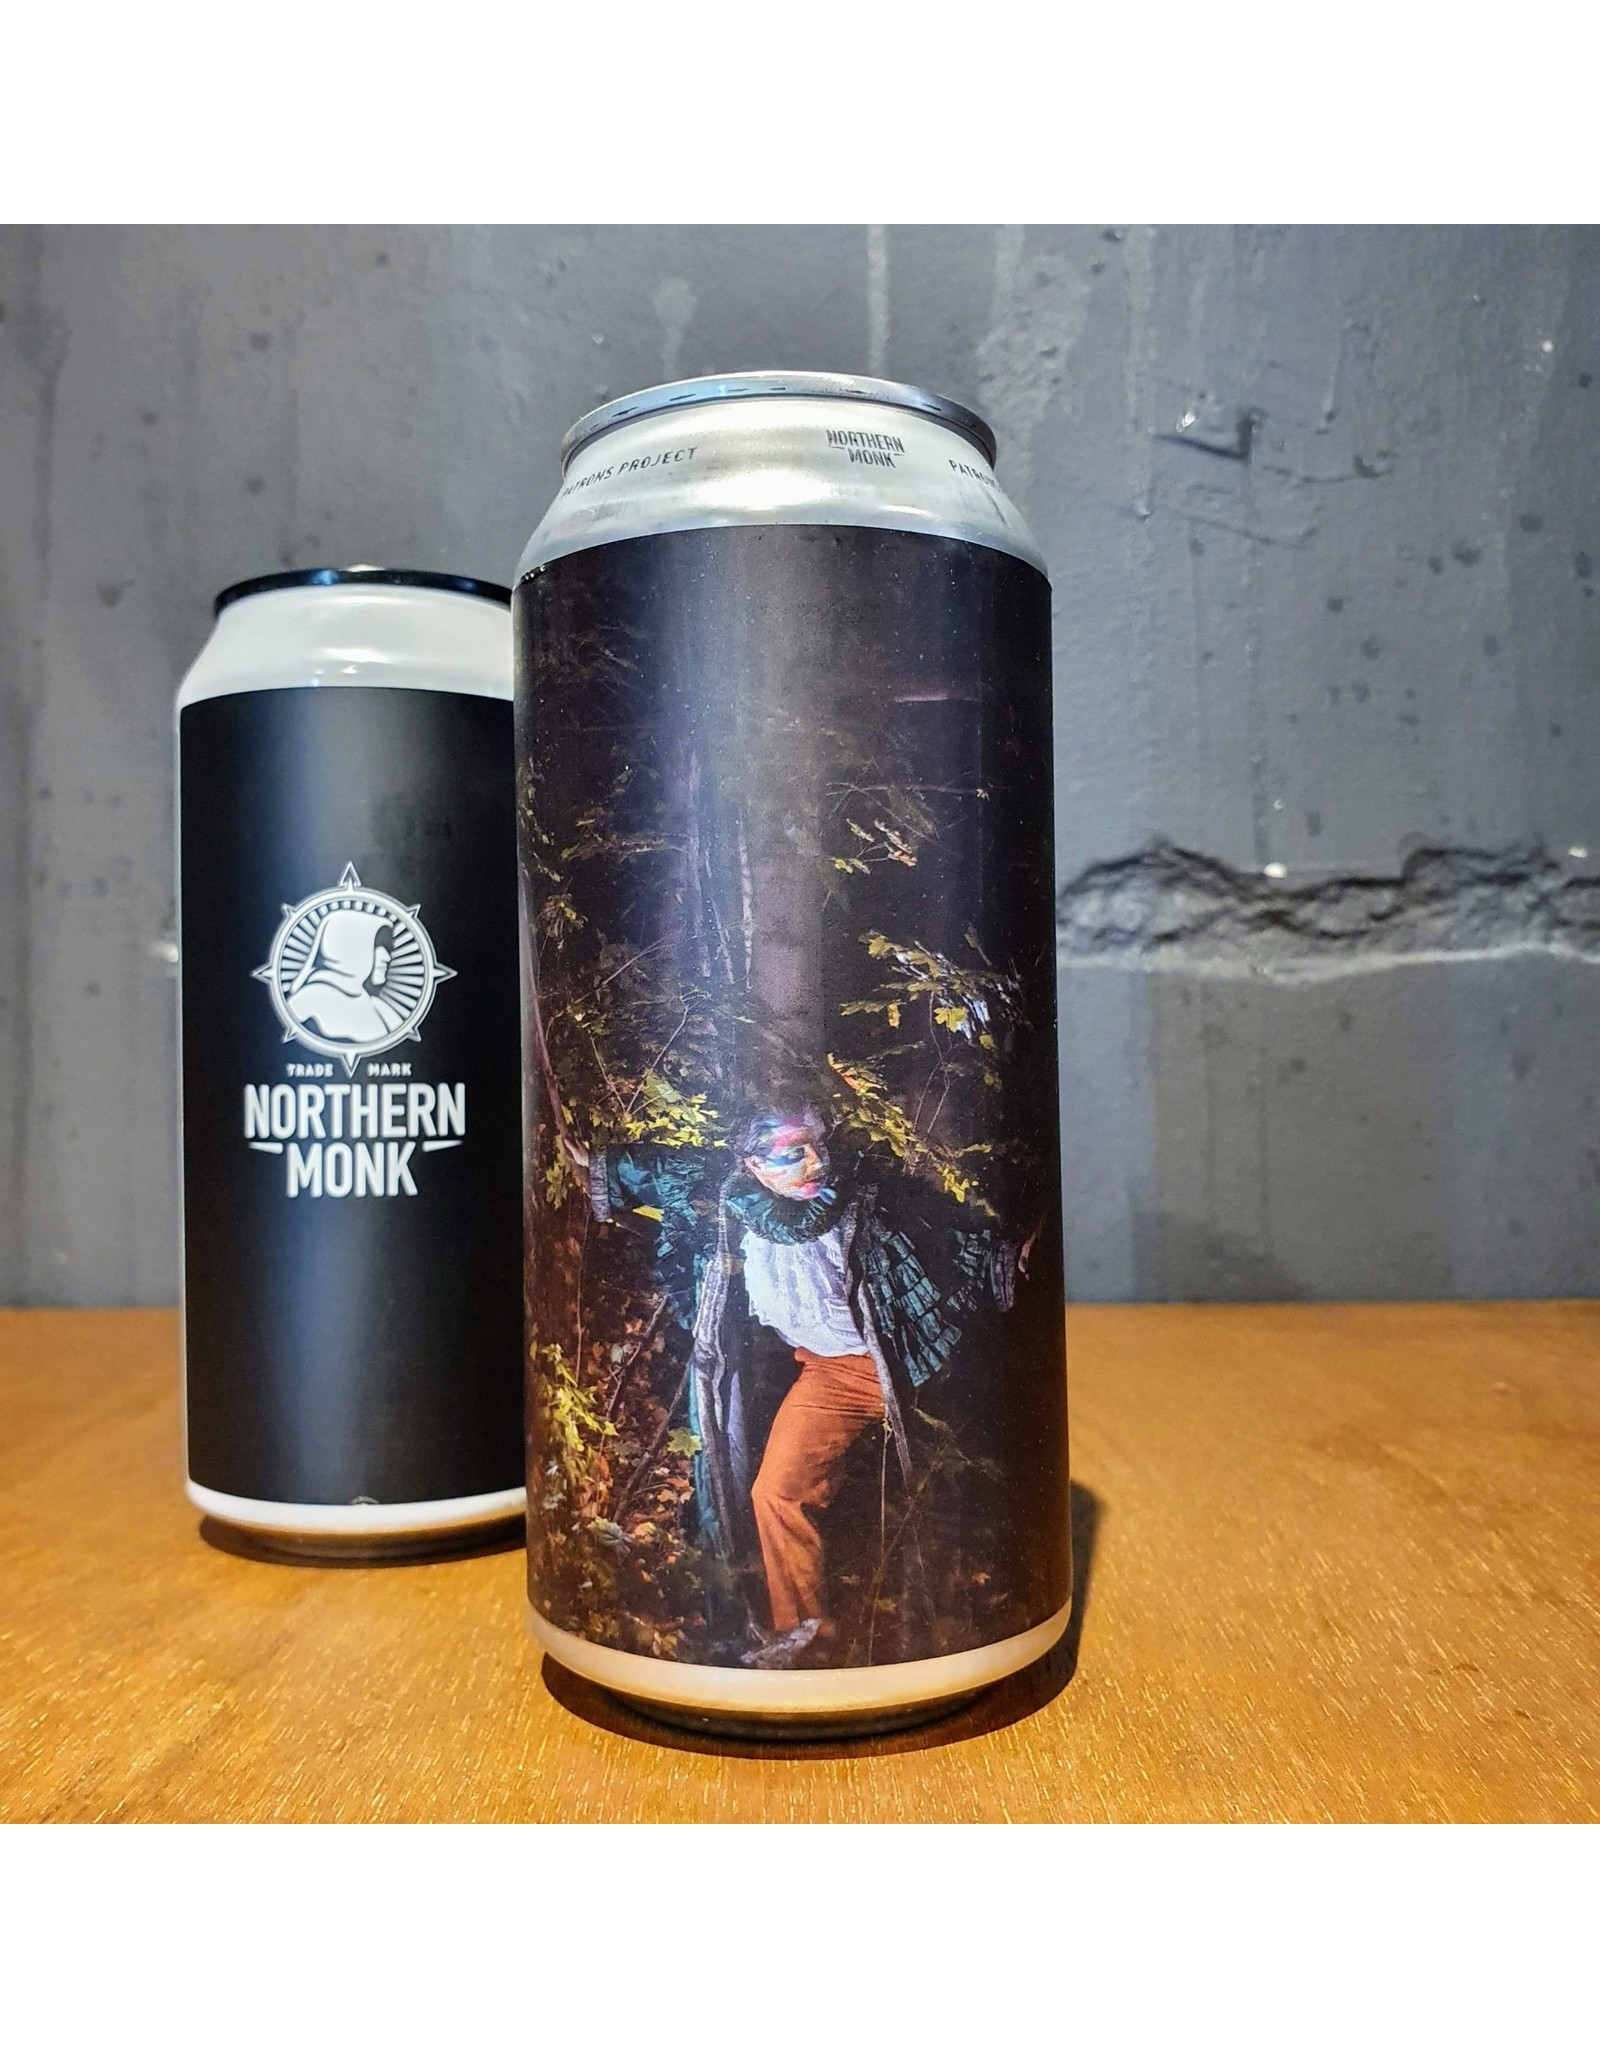 Northern monk Northern Monk: Patrons Project 11.03 // Lord Whitney // Lord of Misrule // Oat Wine